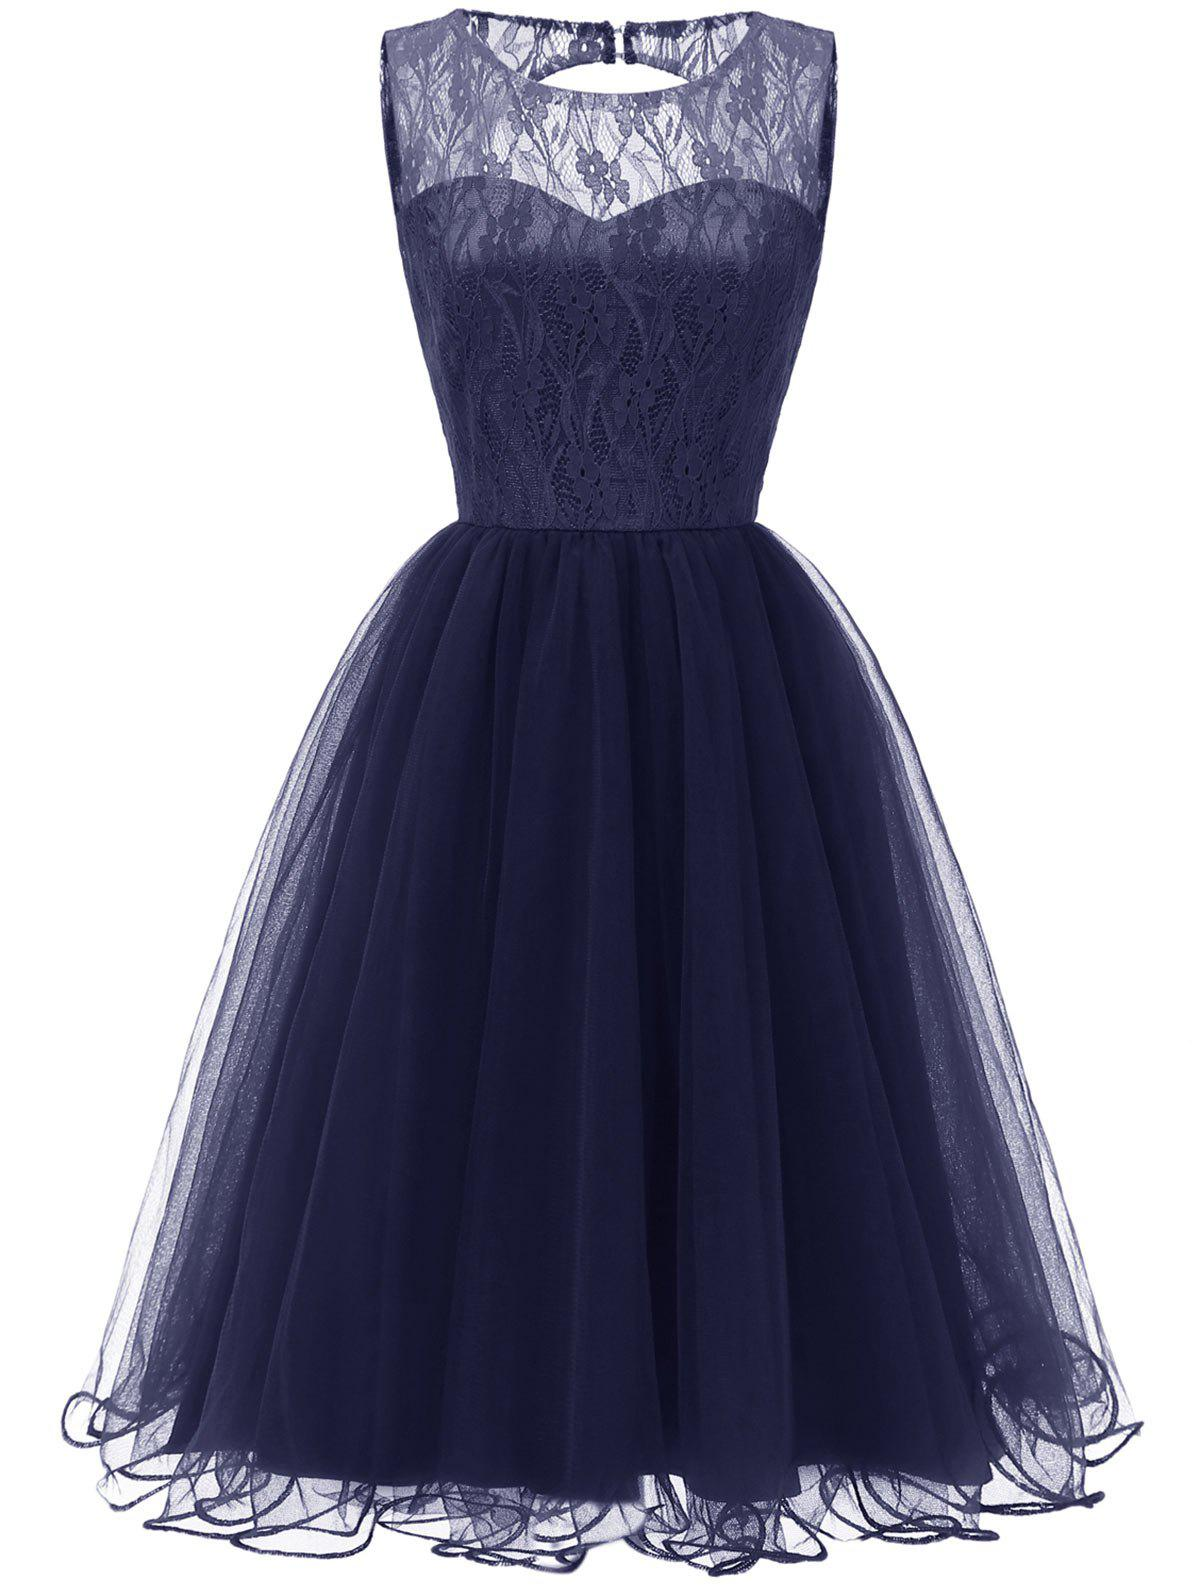 Unique Sleeveless Backless Lace A Line Dress